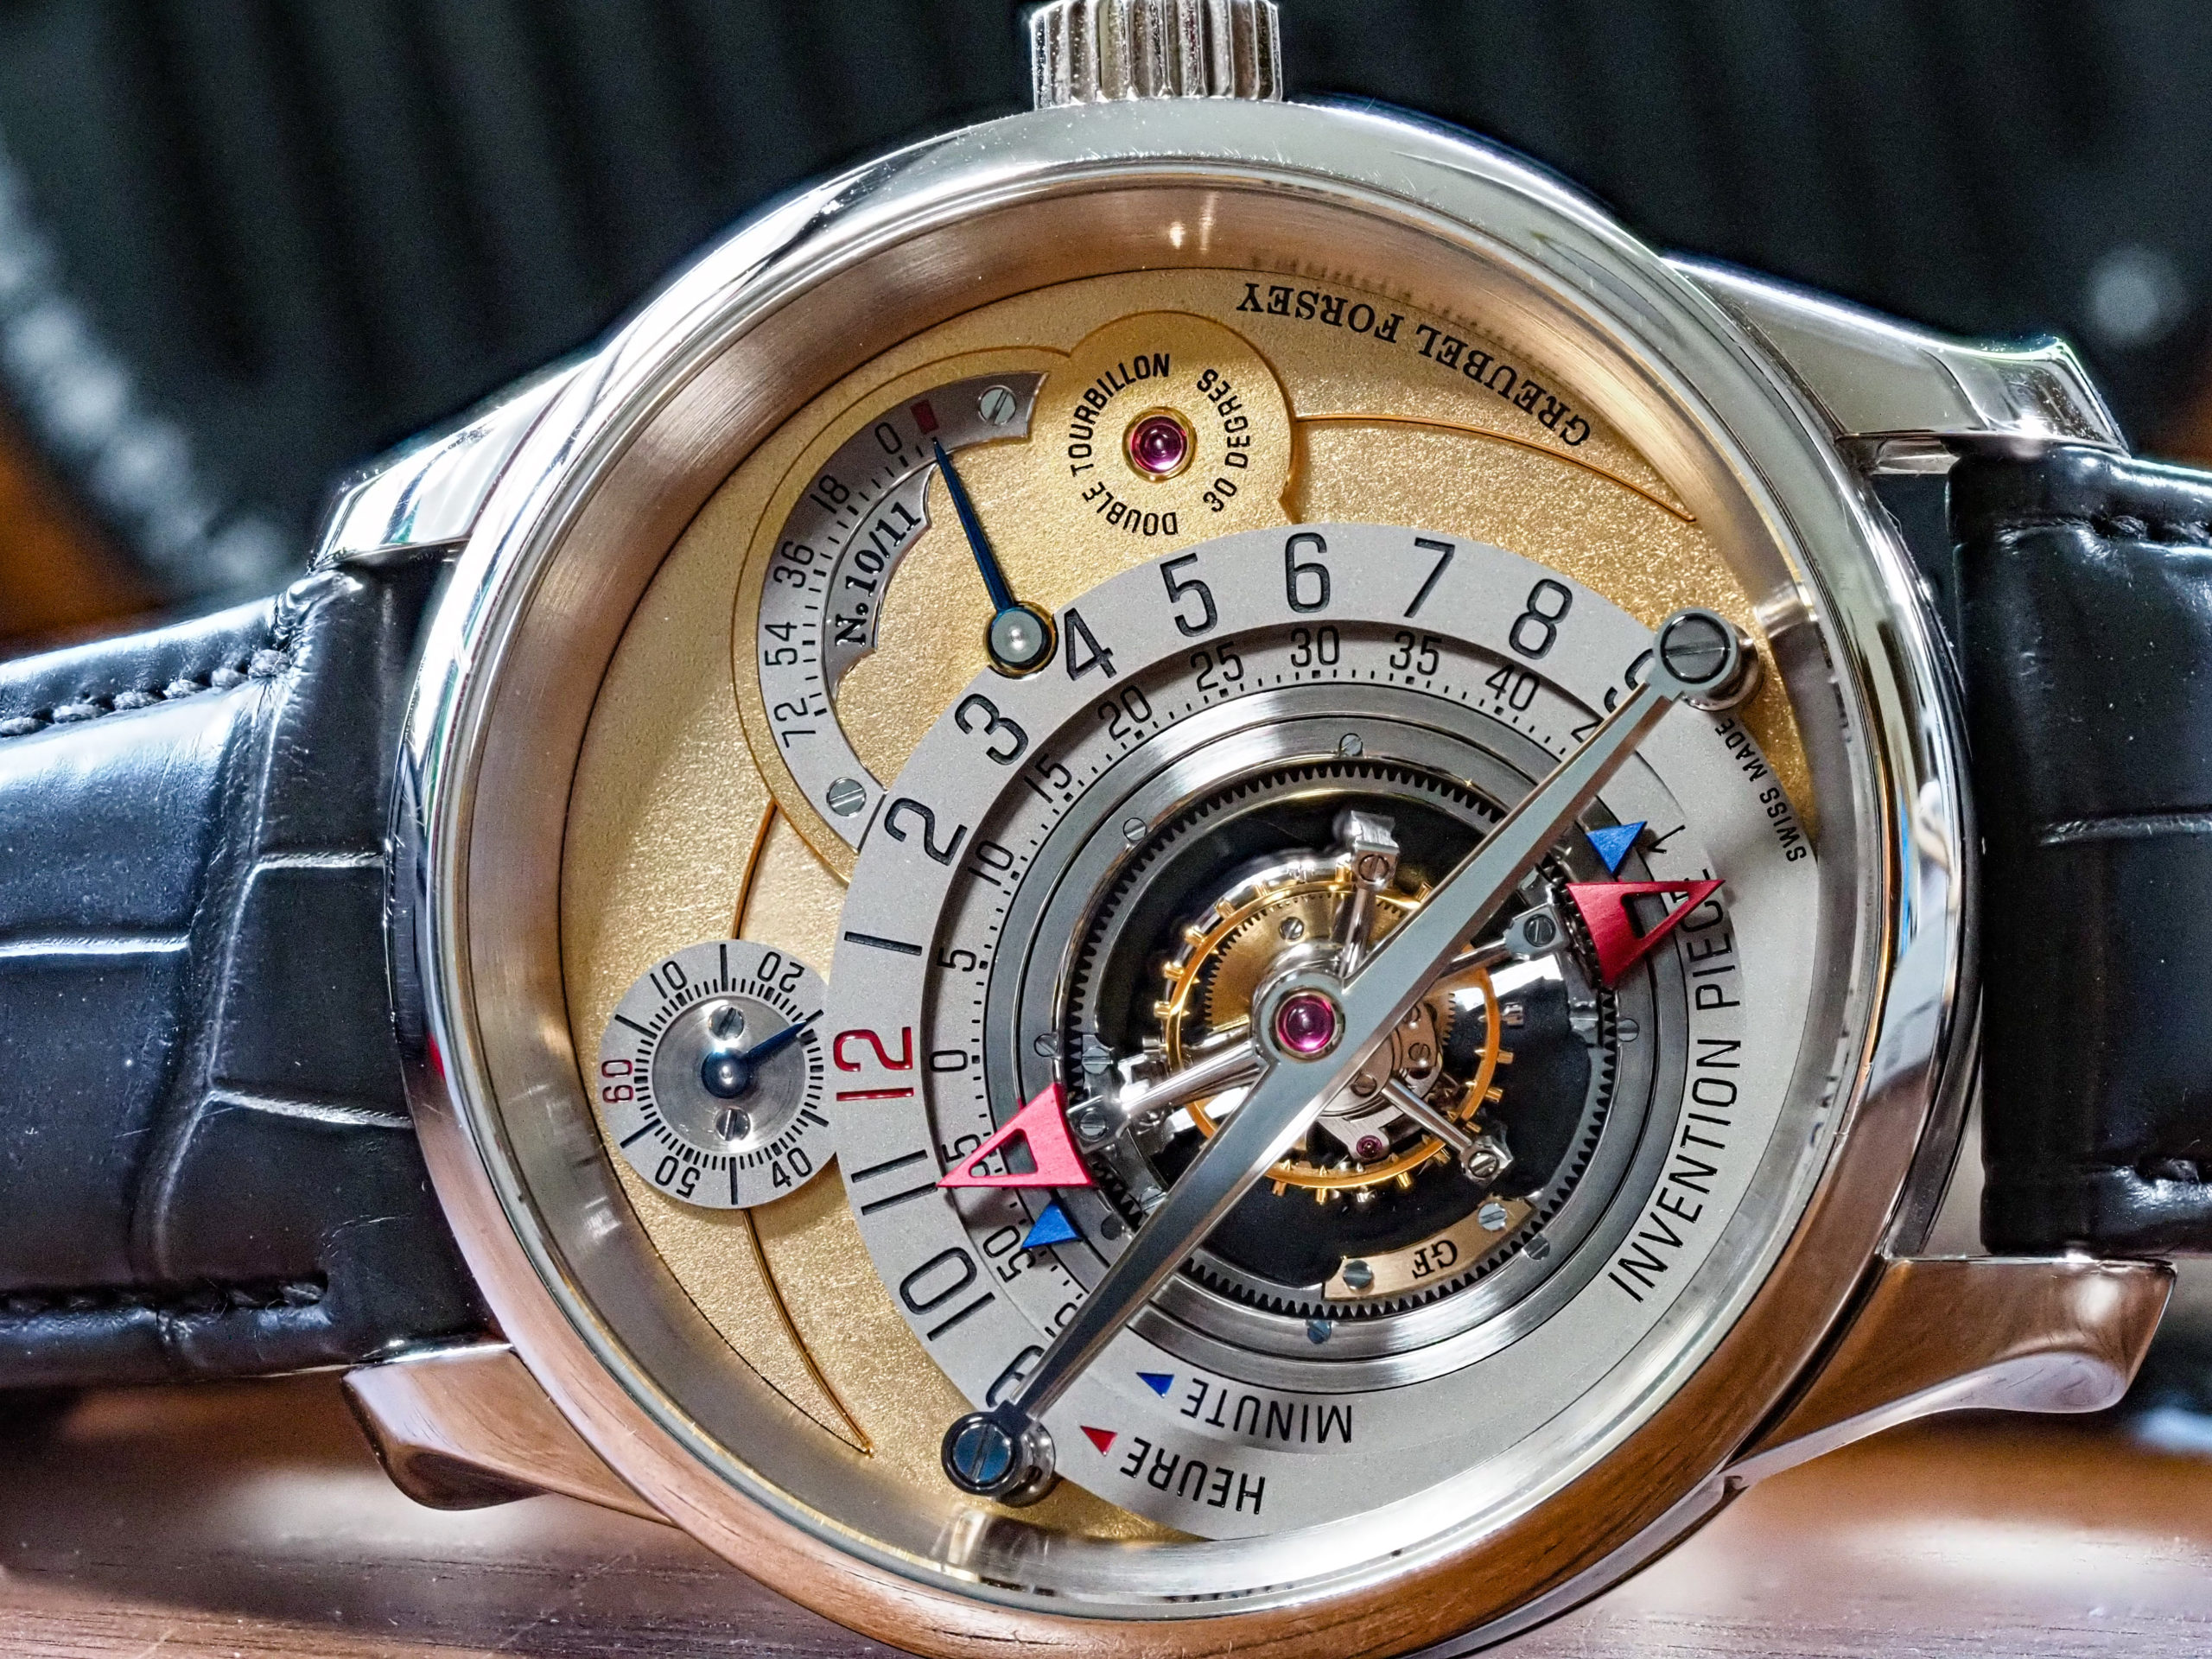 Greubel Forsey Invention Piece 1 IP1 Dial